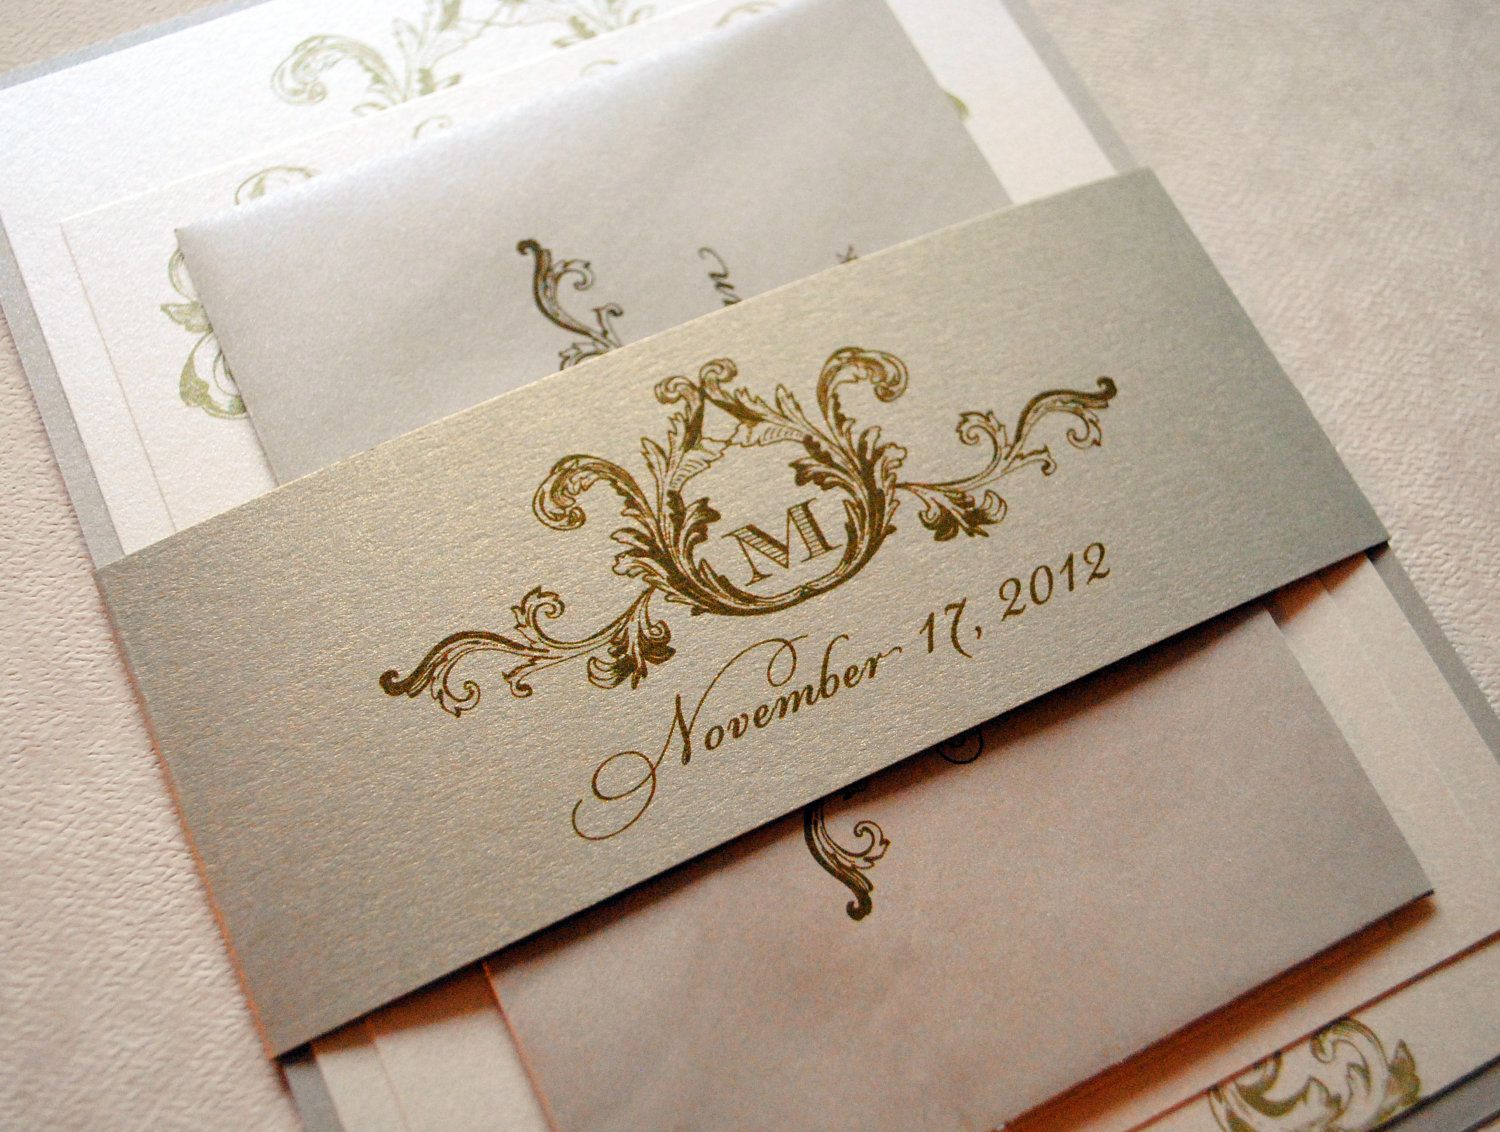 ivory champagne and gold wedding invitations elegant wedding invitations champagne gold - Amazing Wedding Invitations